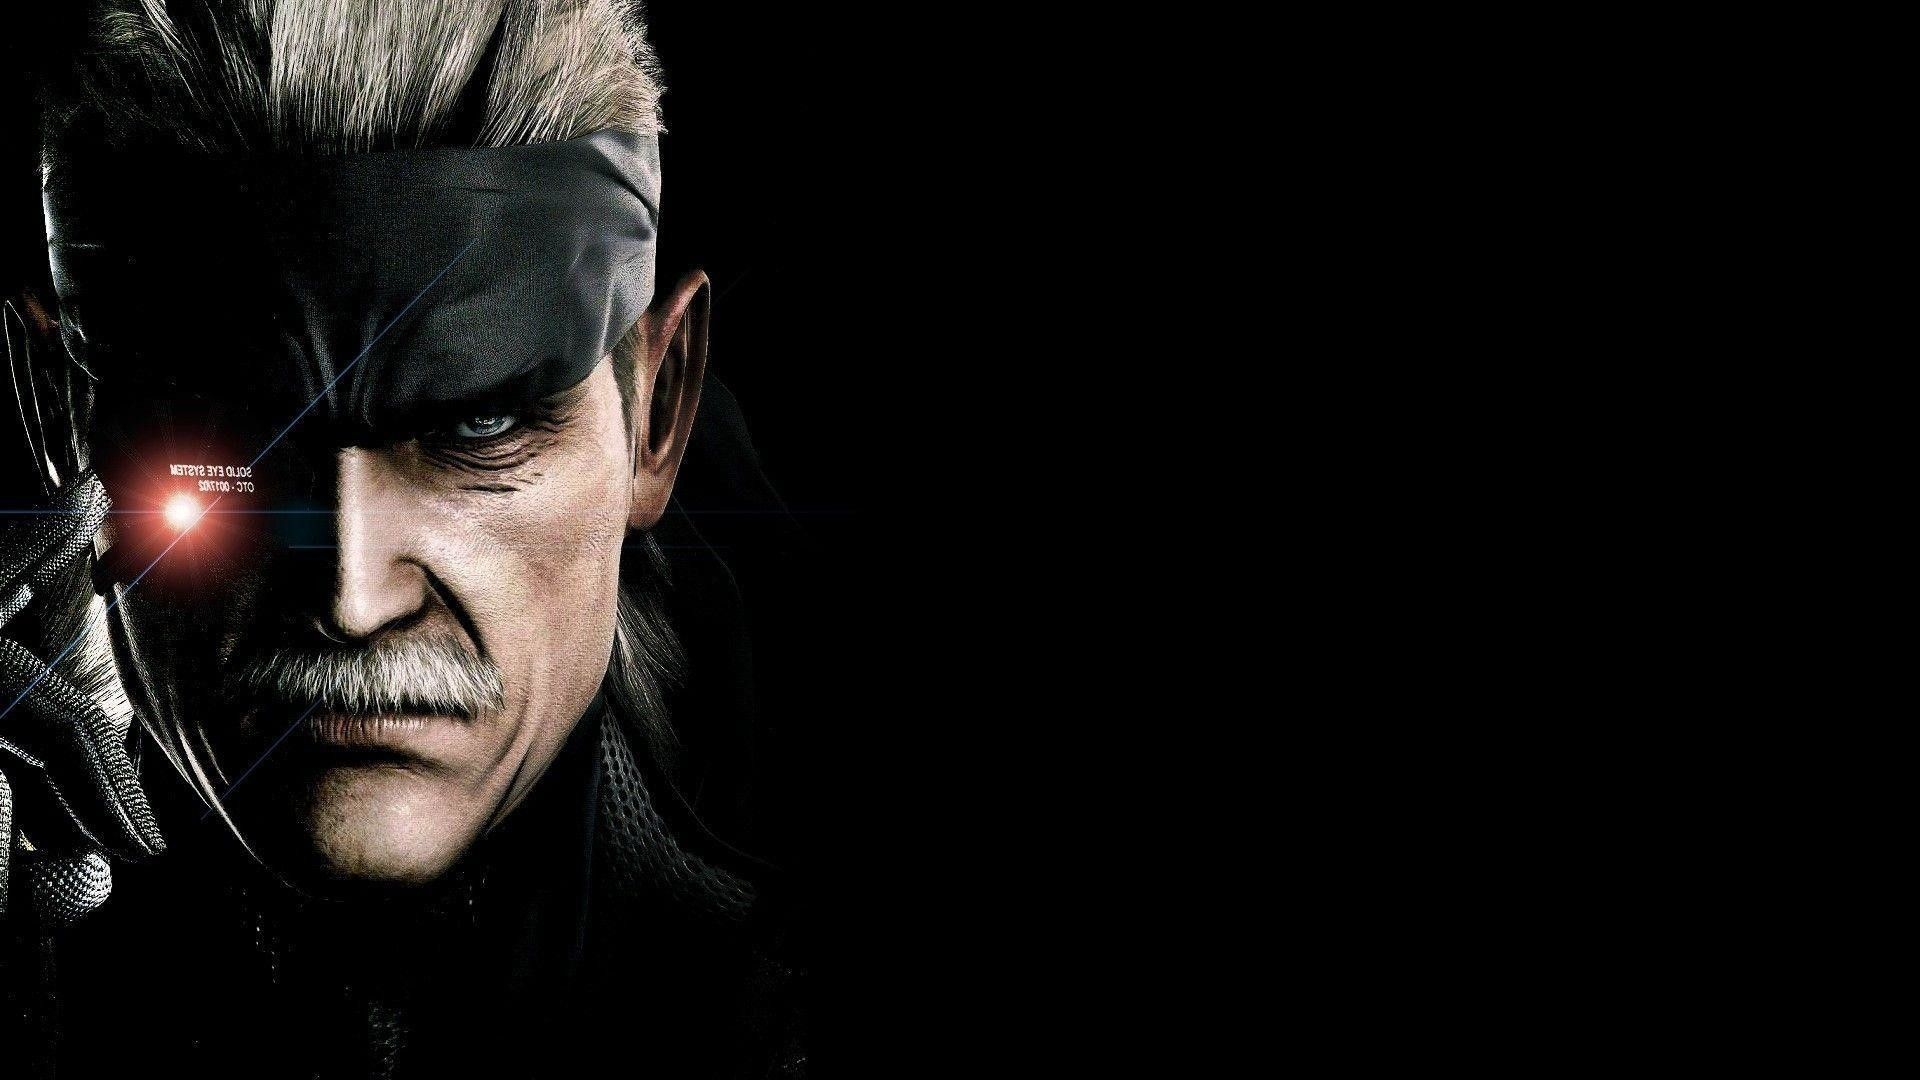 1920x1080 Images For Solid Snake Wallpaper Mgs4 Snake Metal